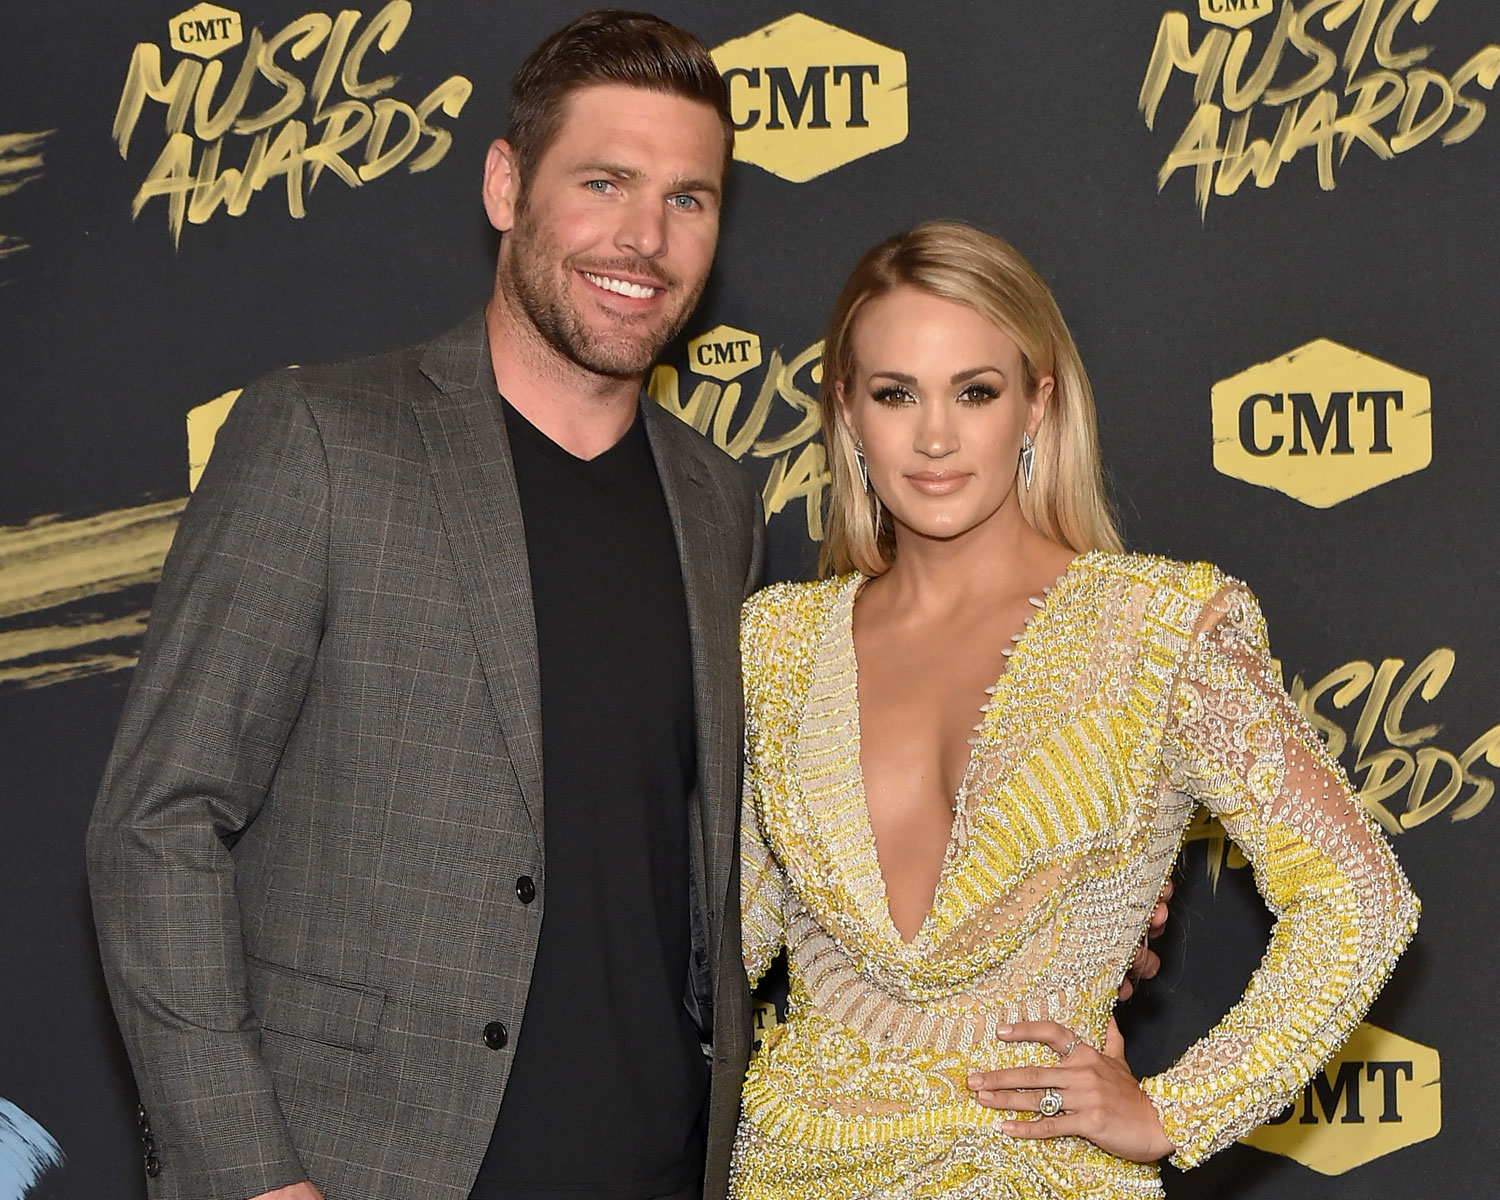 Mike Fisher & Carrie Underwood